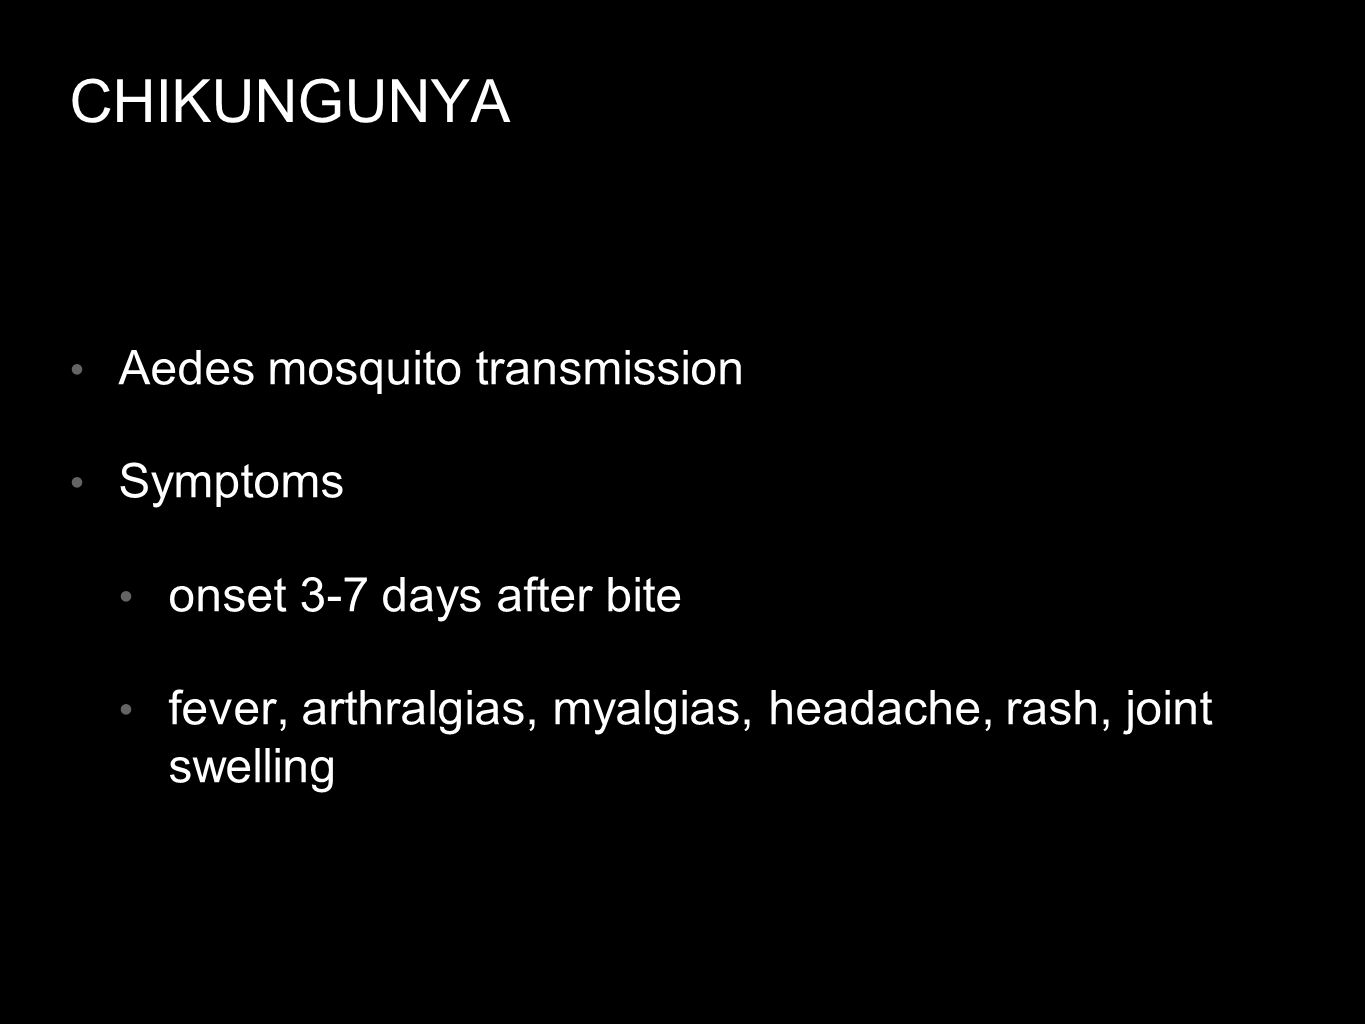 CHIKUNGUNYA Aedes mosquito transmission Symptoms onset 3-7 days after bite fever, arthralgias, myalgias, headache, rash, joint swelling